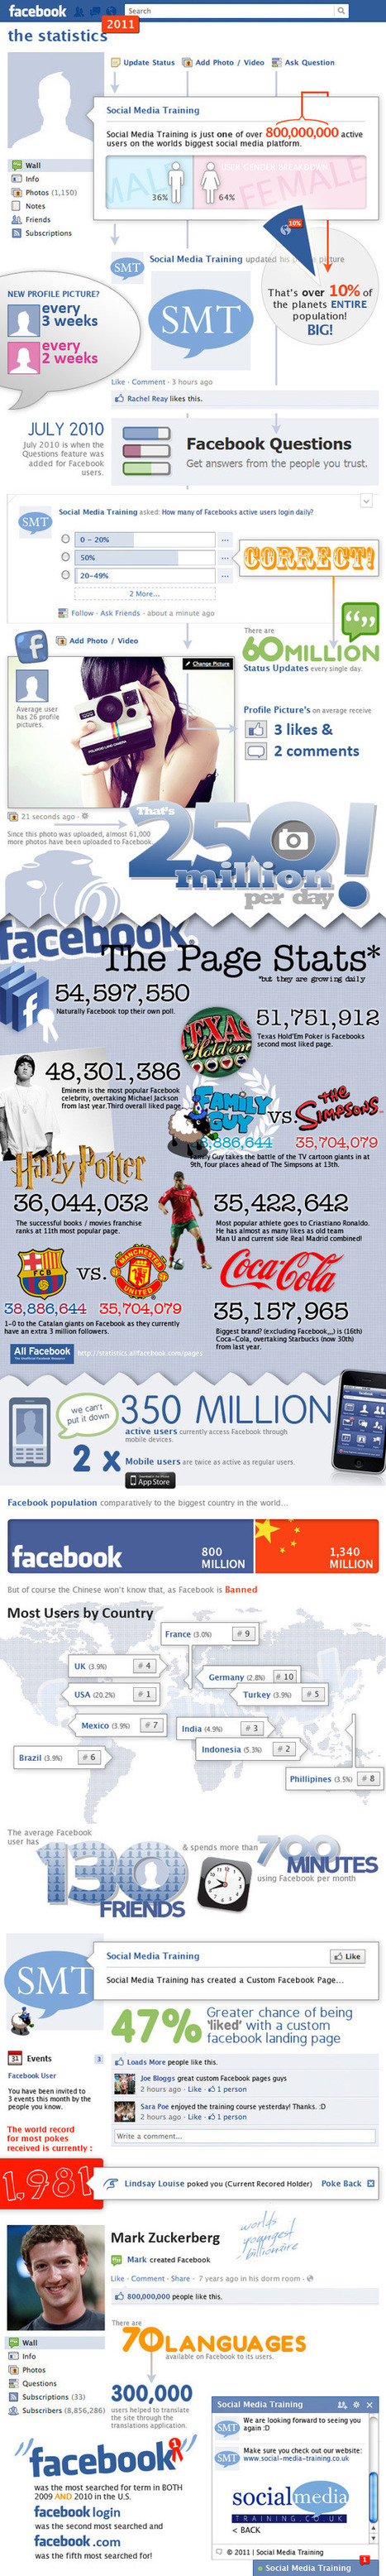 2011 Facebook Statistics | Social Media (network, technology, blog, community, virtual reality, etc...) | Scoop.it